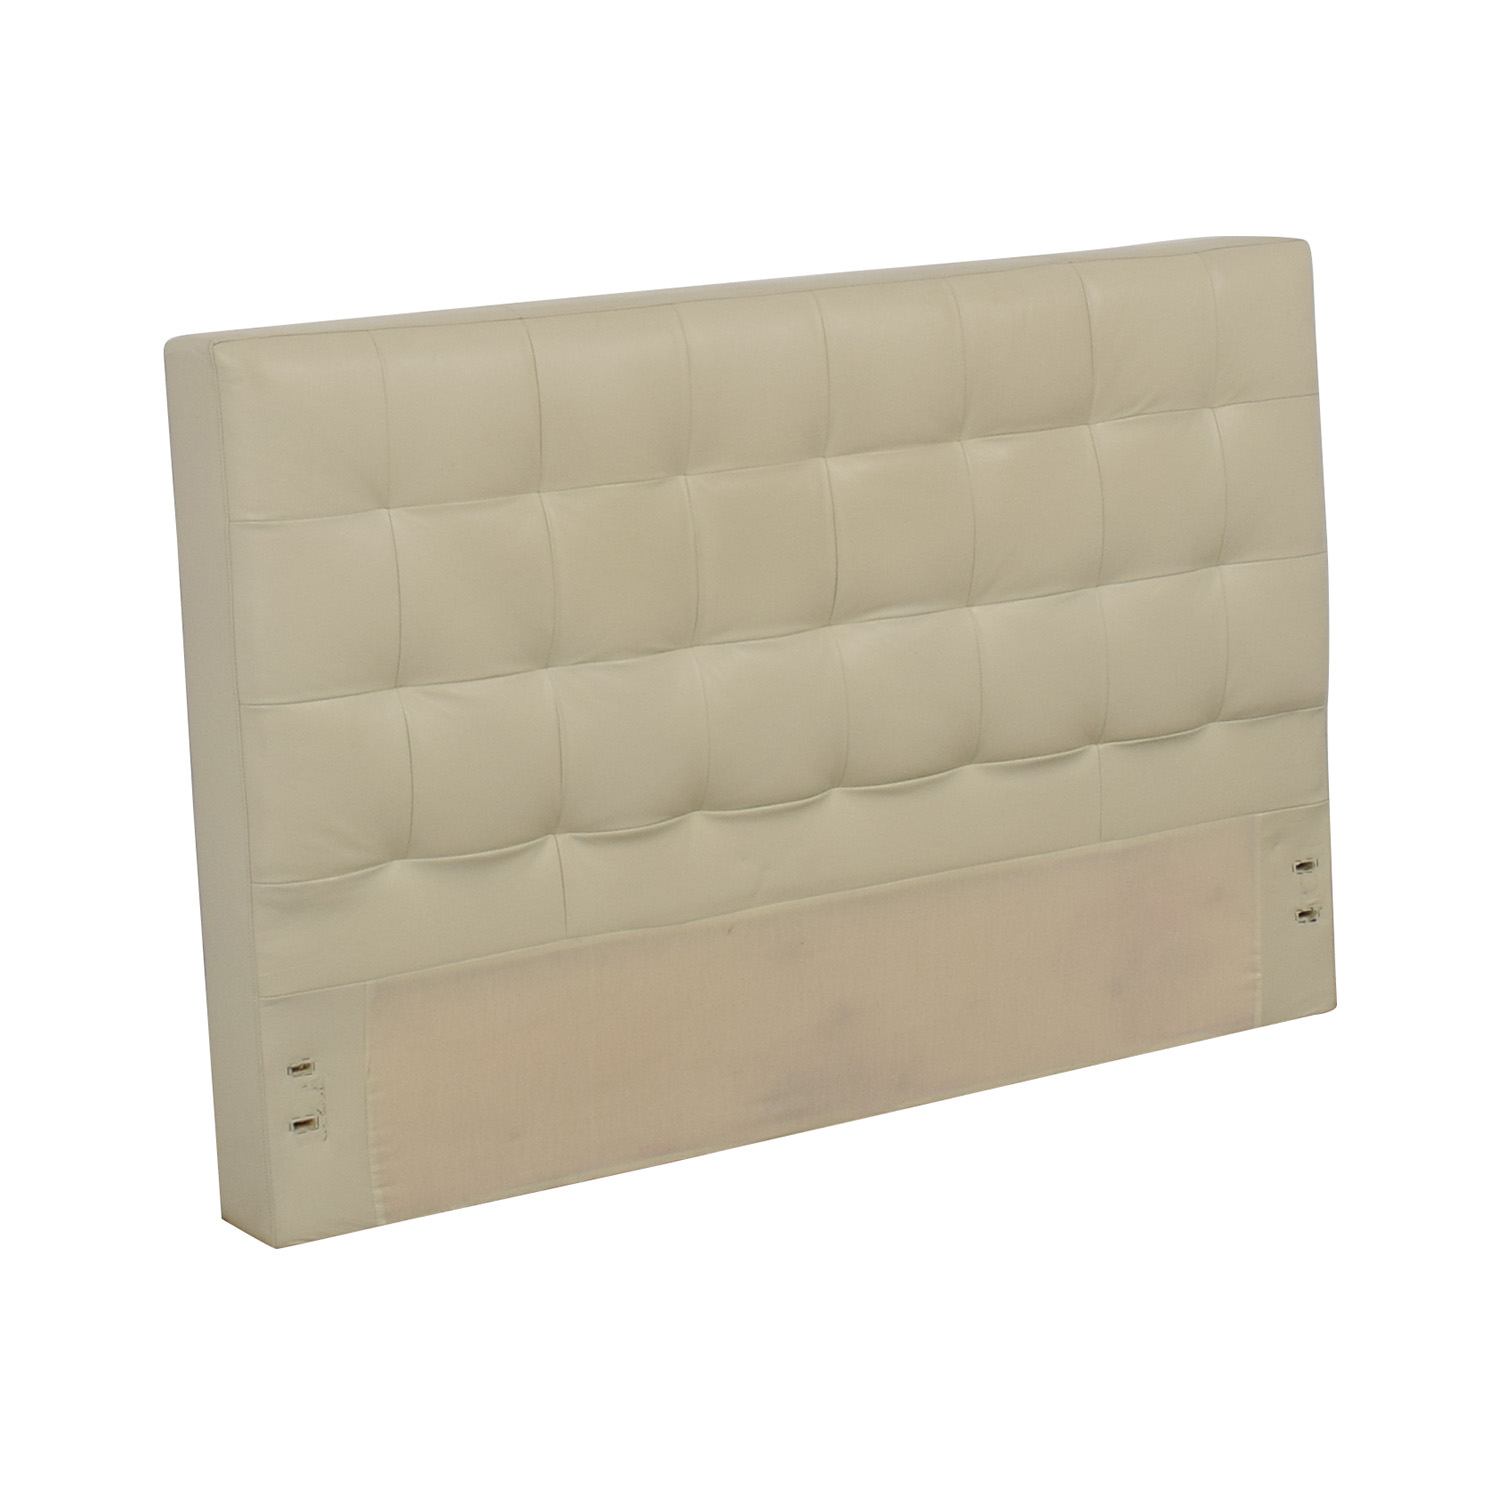 West Elm Low Leather Grid-Tufted Headboard / Headboards